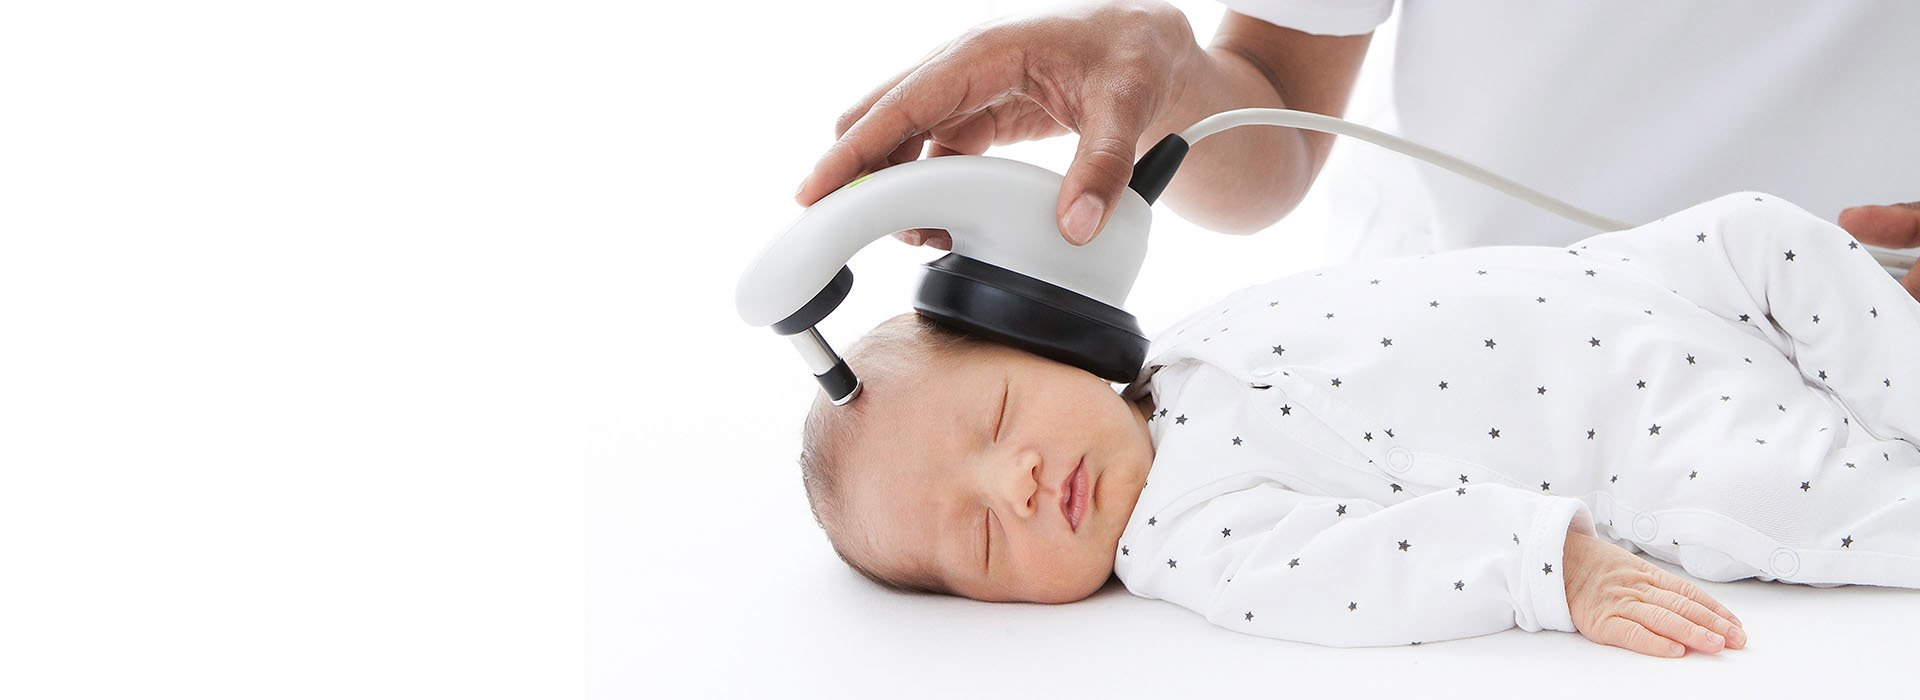 Sleeping baby is getting ts hearing tested with the MAICO easyScreen BERAphone